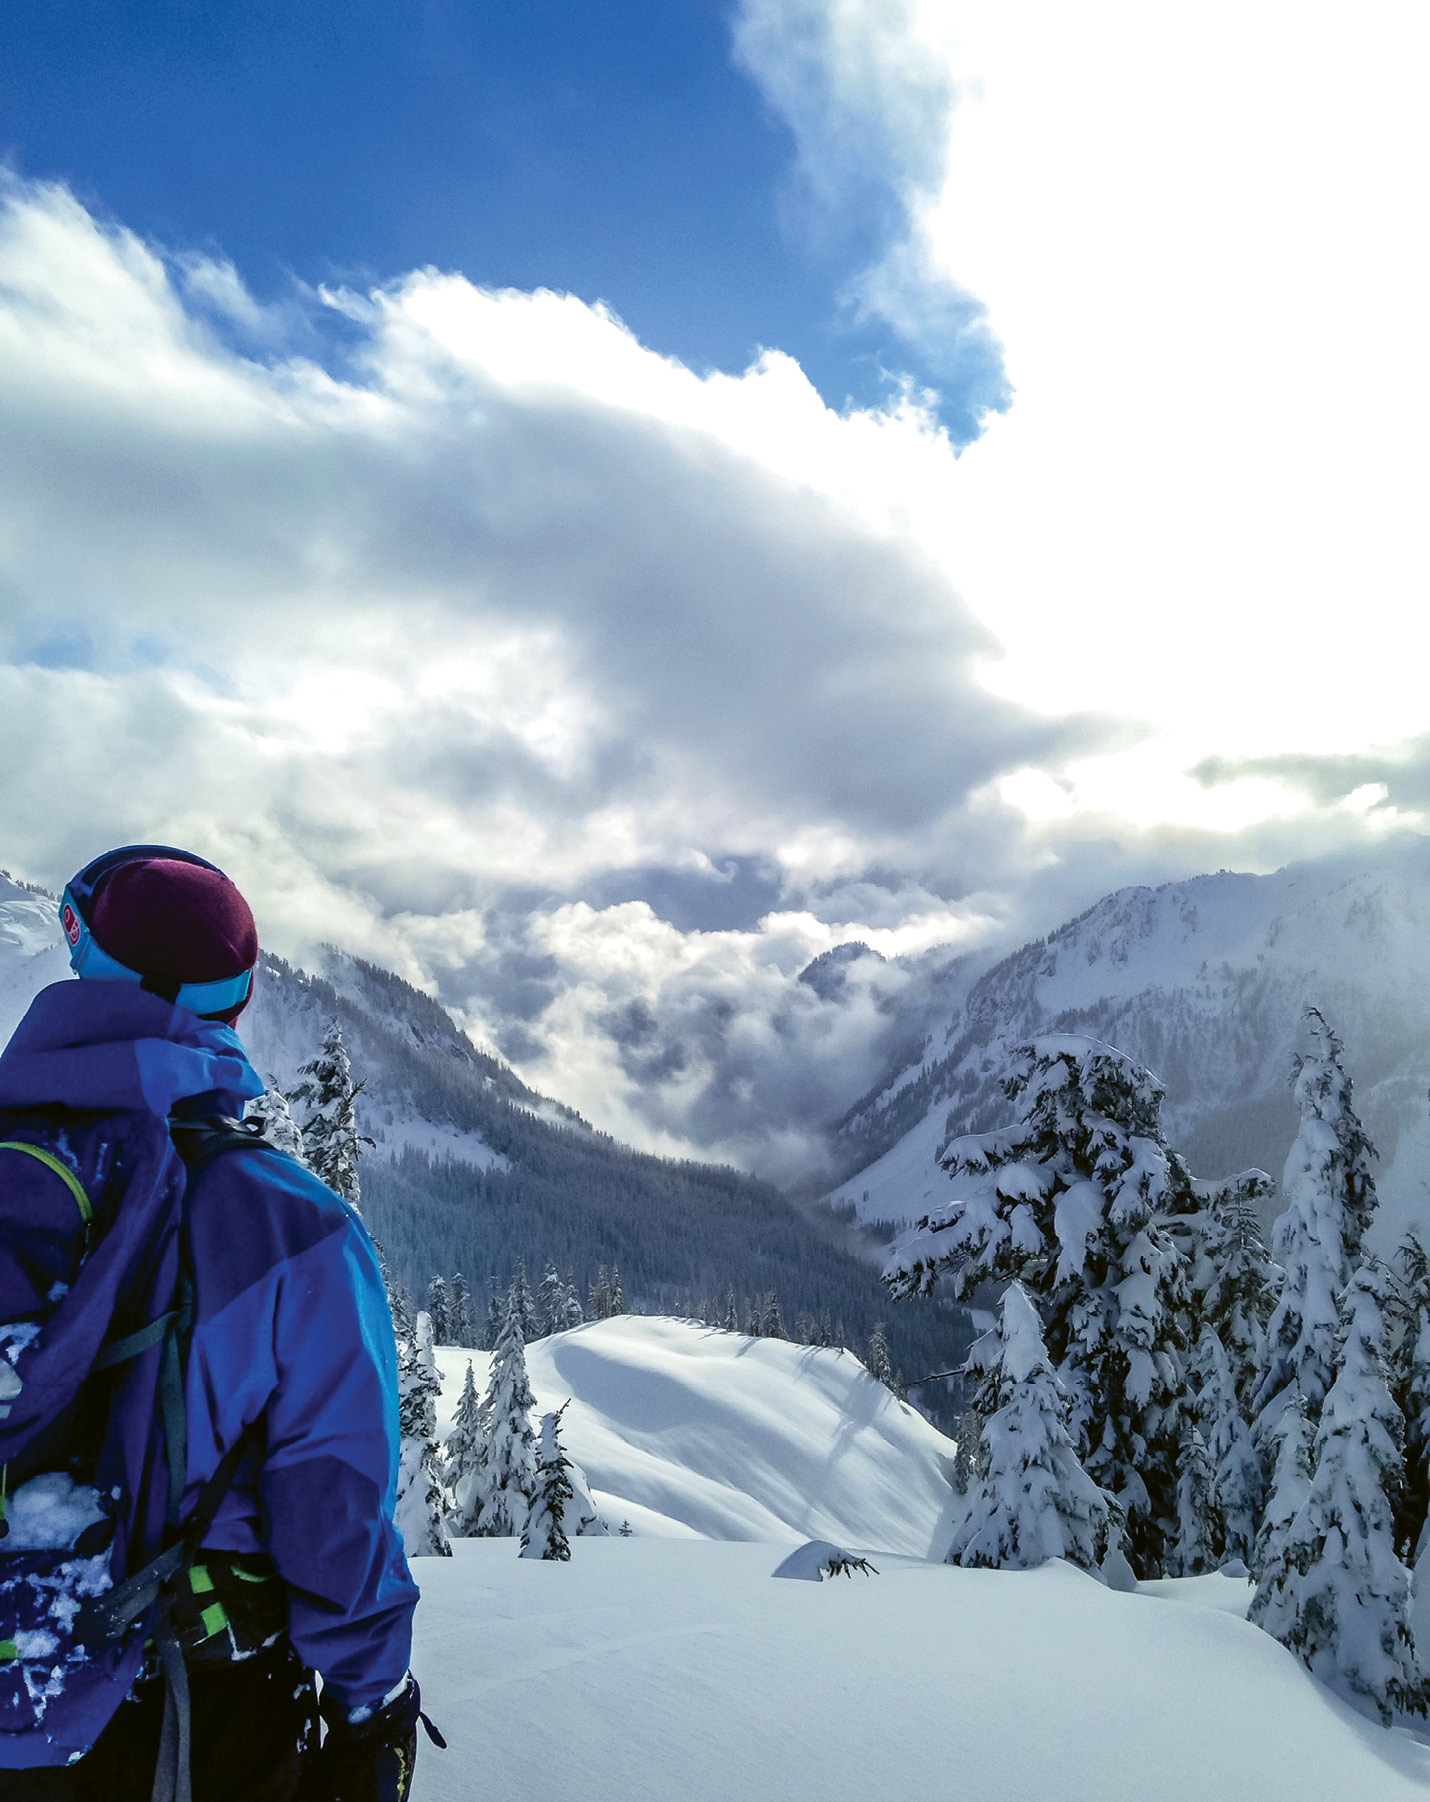 Powder Stash: Mount Baker is a true locals' ski mountain, but they'll make you feel welcome if you're willing to trek through the rainforest from Bellingham to these legendary steep slopes with famously soft snow.